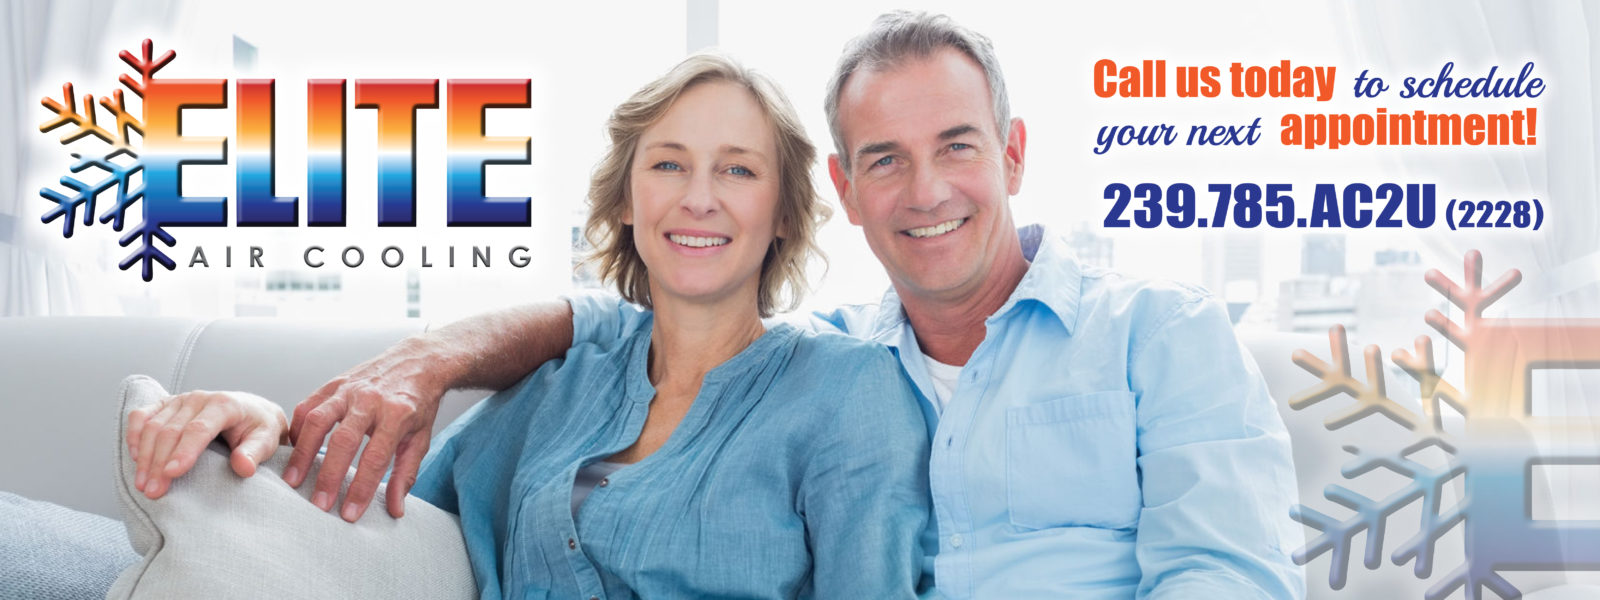 Happy husband and wife with Elite Air Cooling contact info 239-785-2228